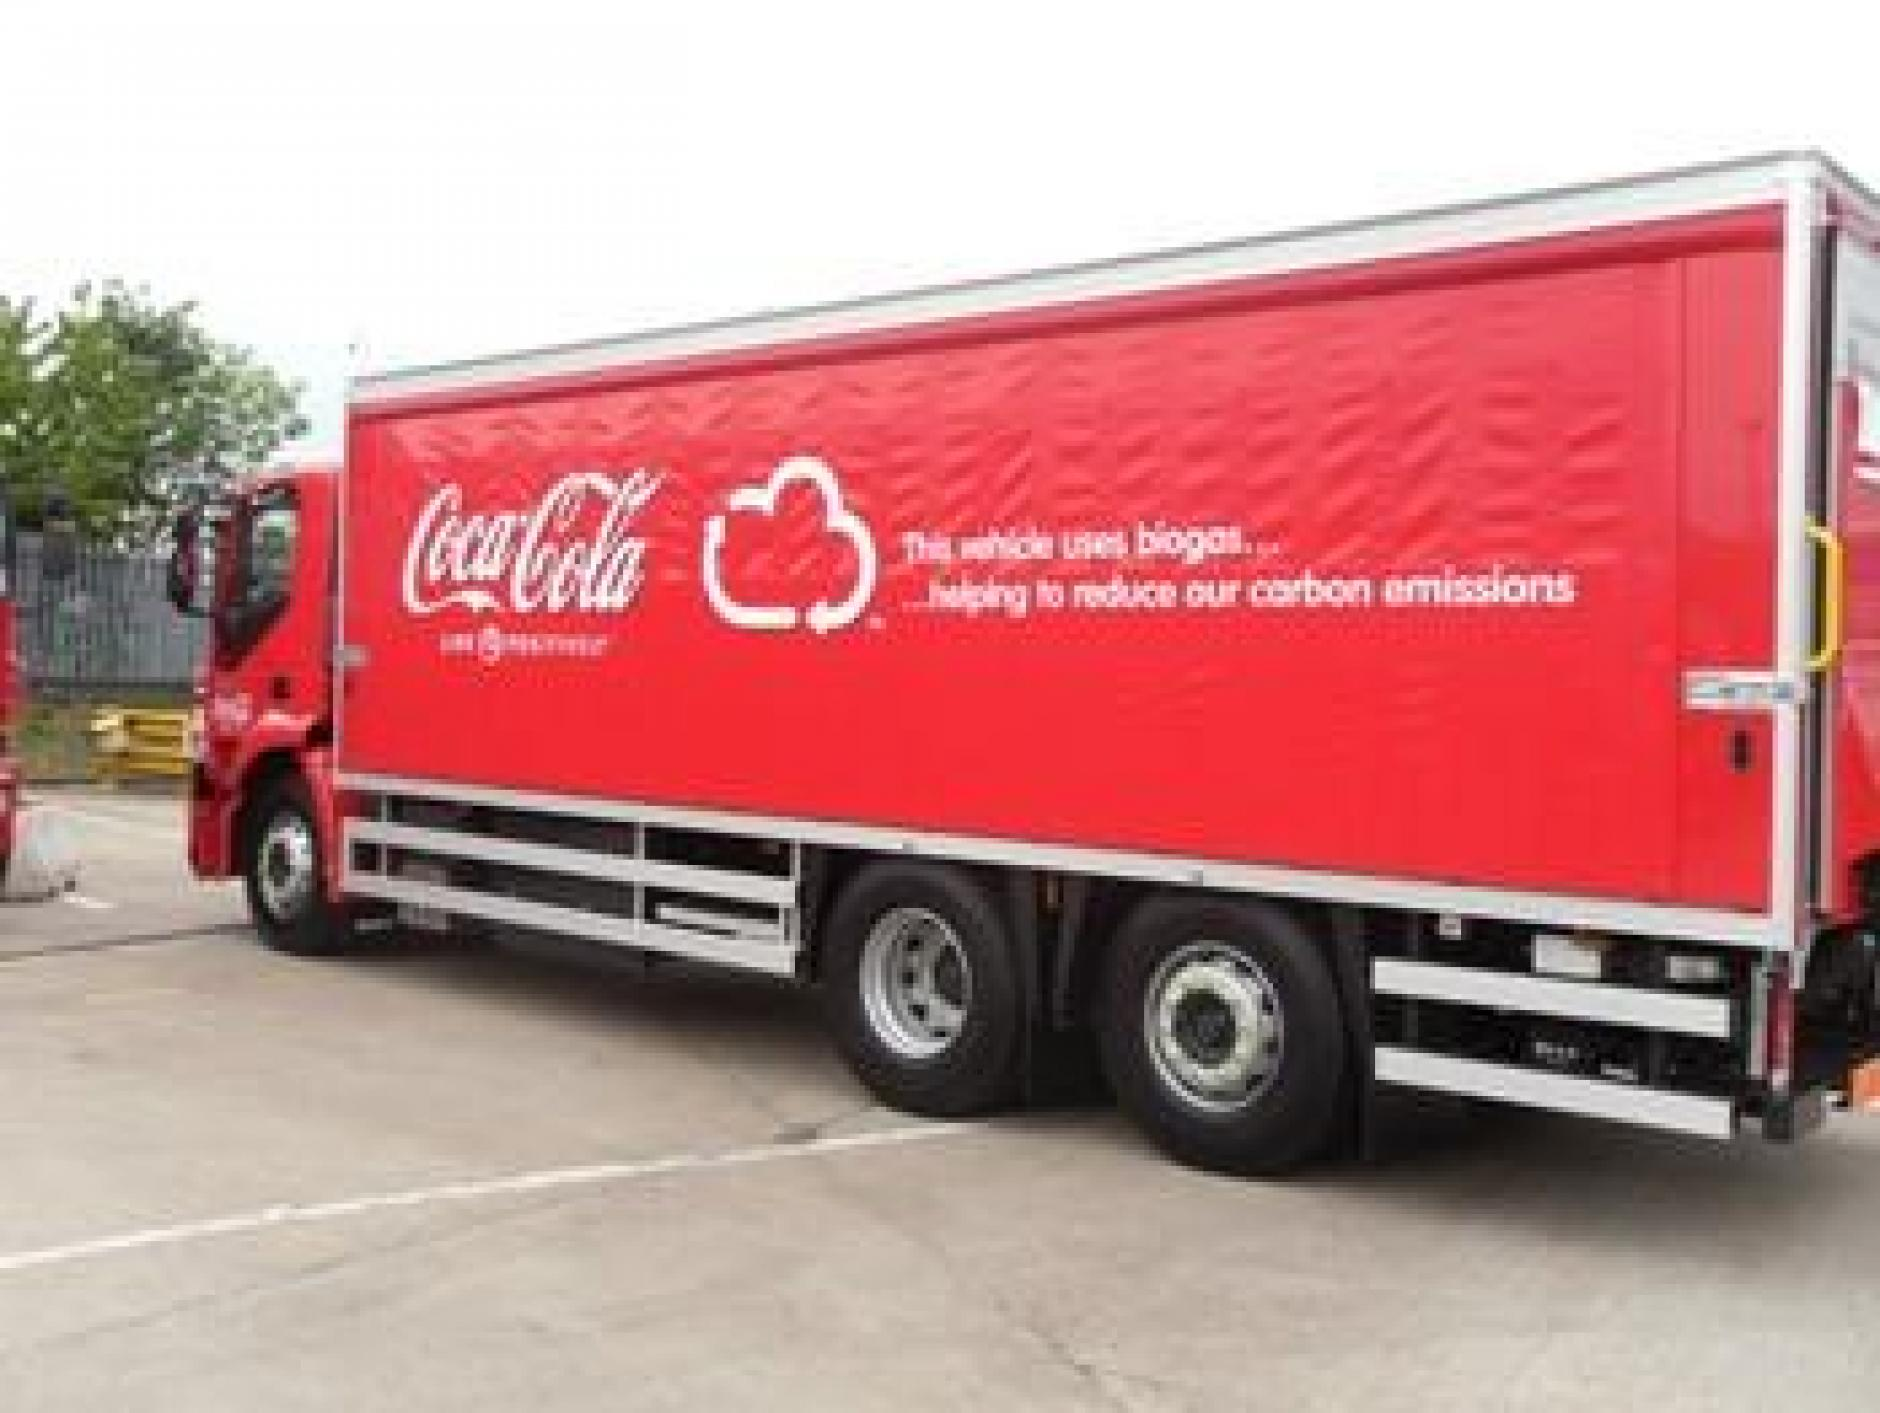 Delivered Soft Drinks Wakefield